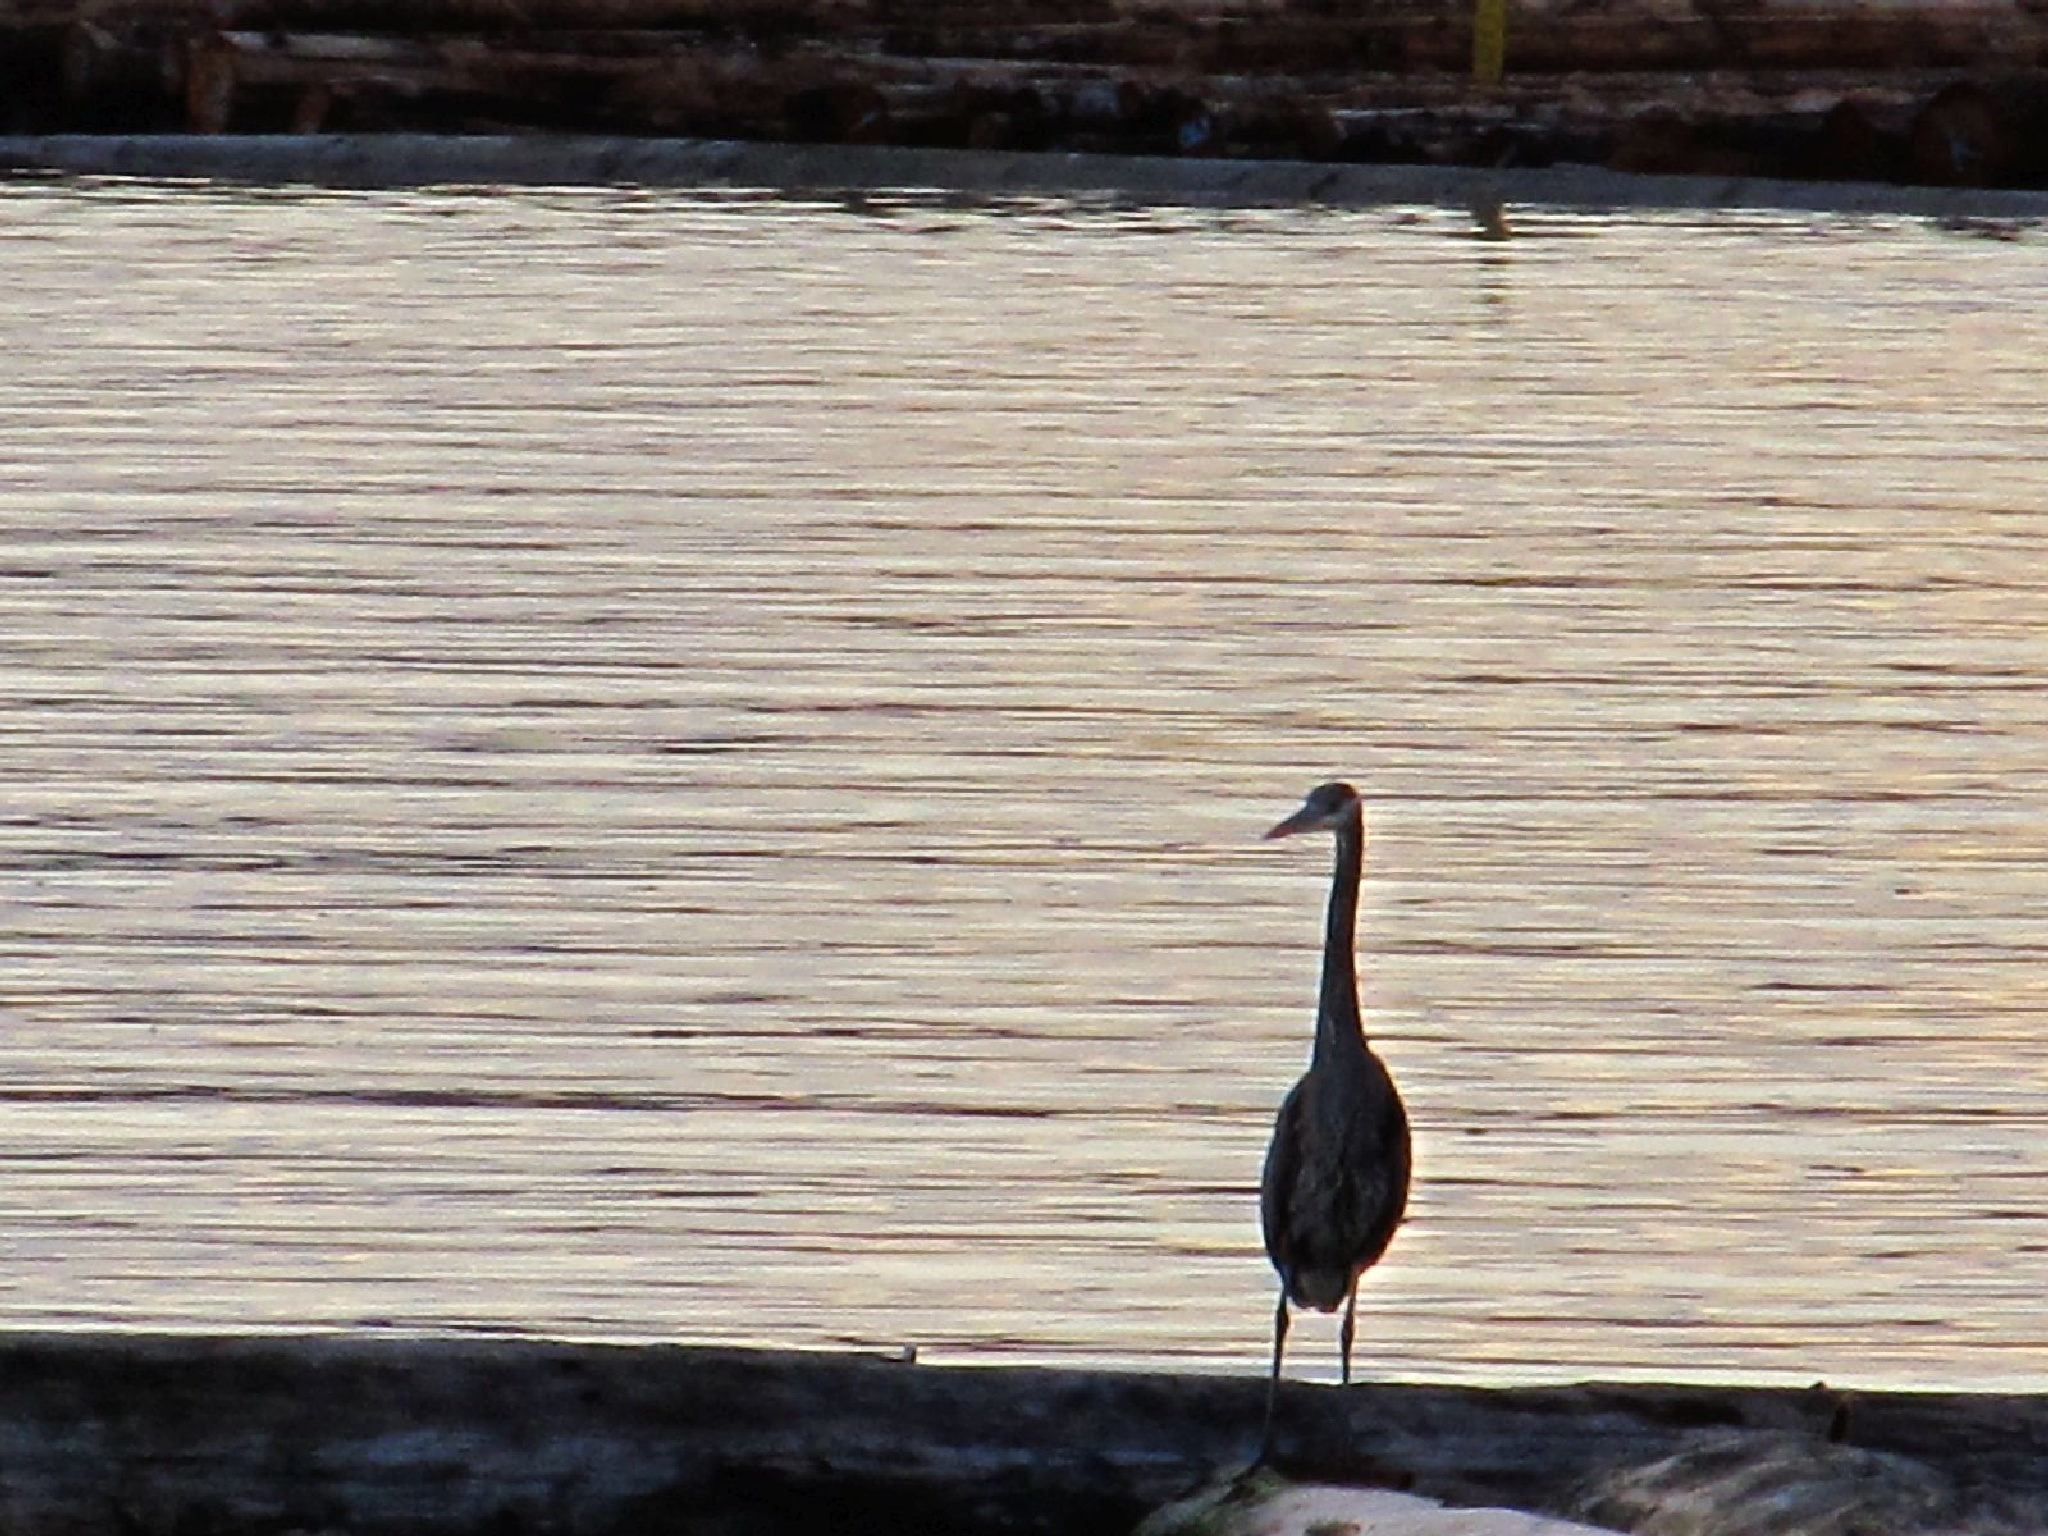 Heron the water's edge (get it, here on the water's edge) LOL ;-) by Ruth Moore